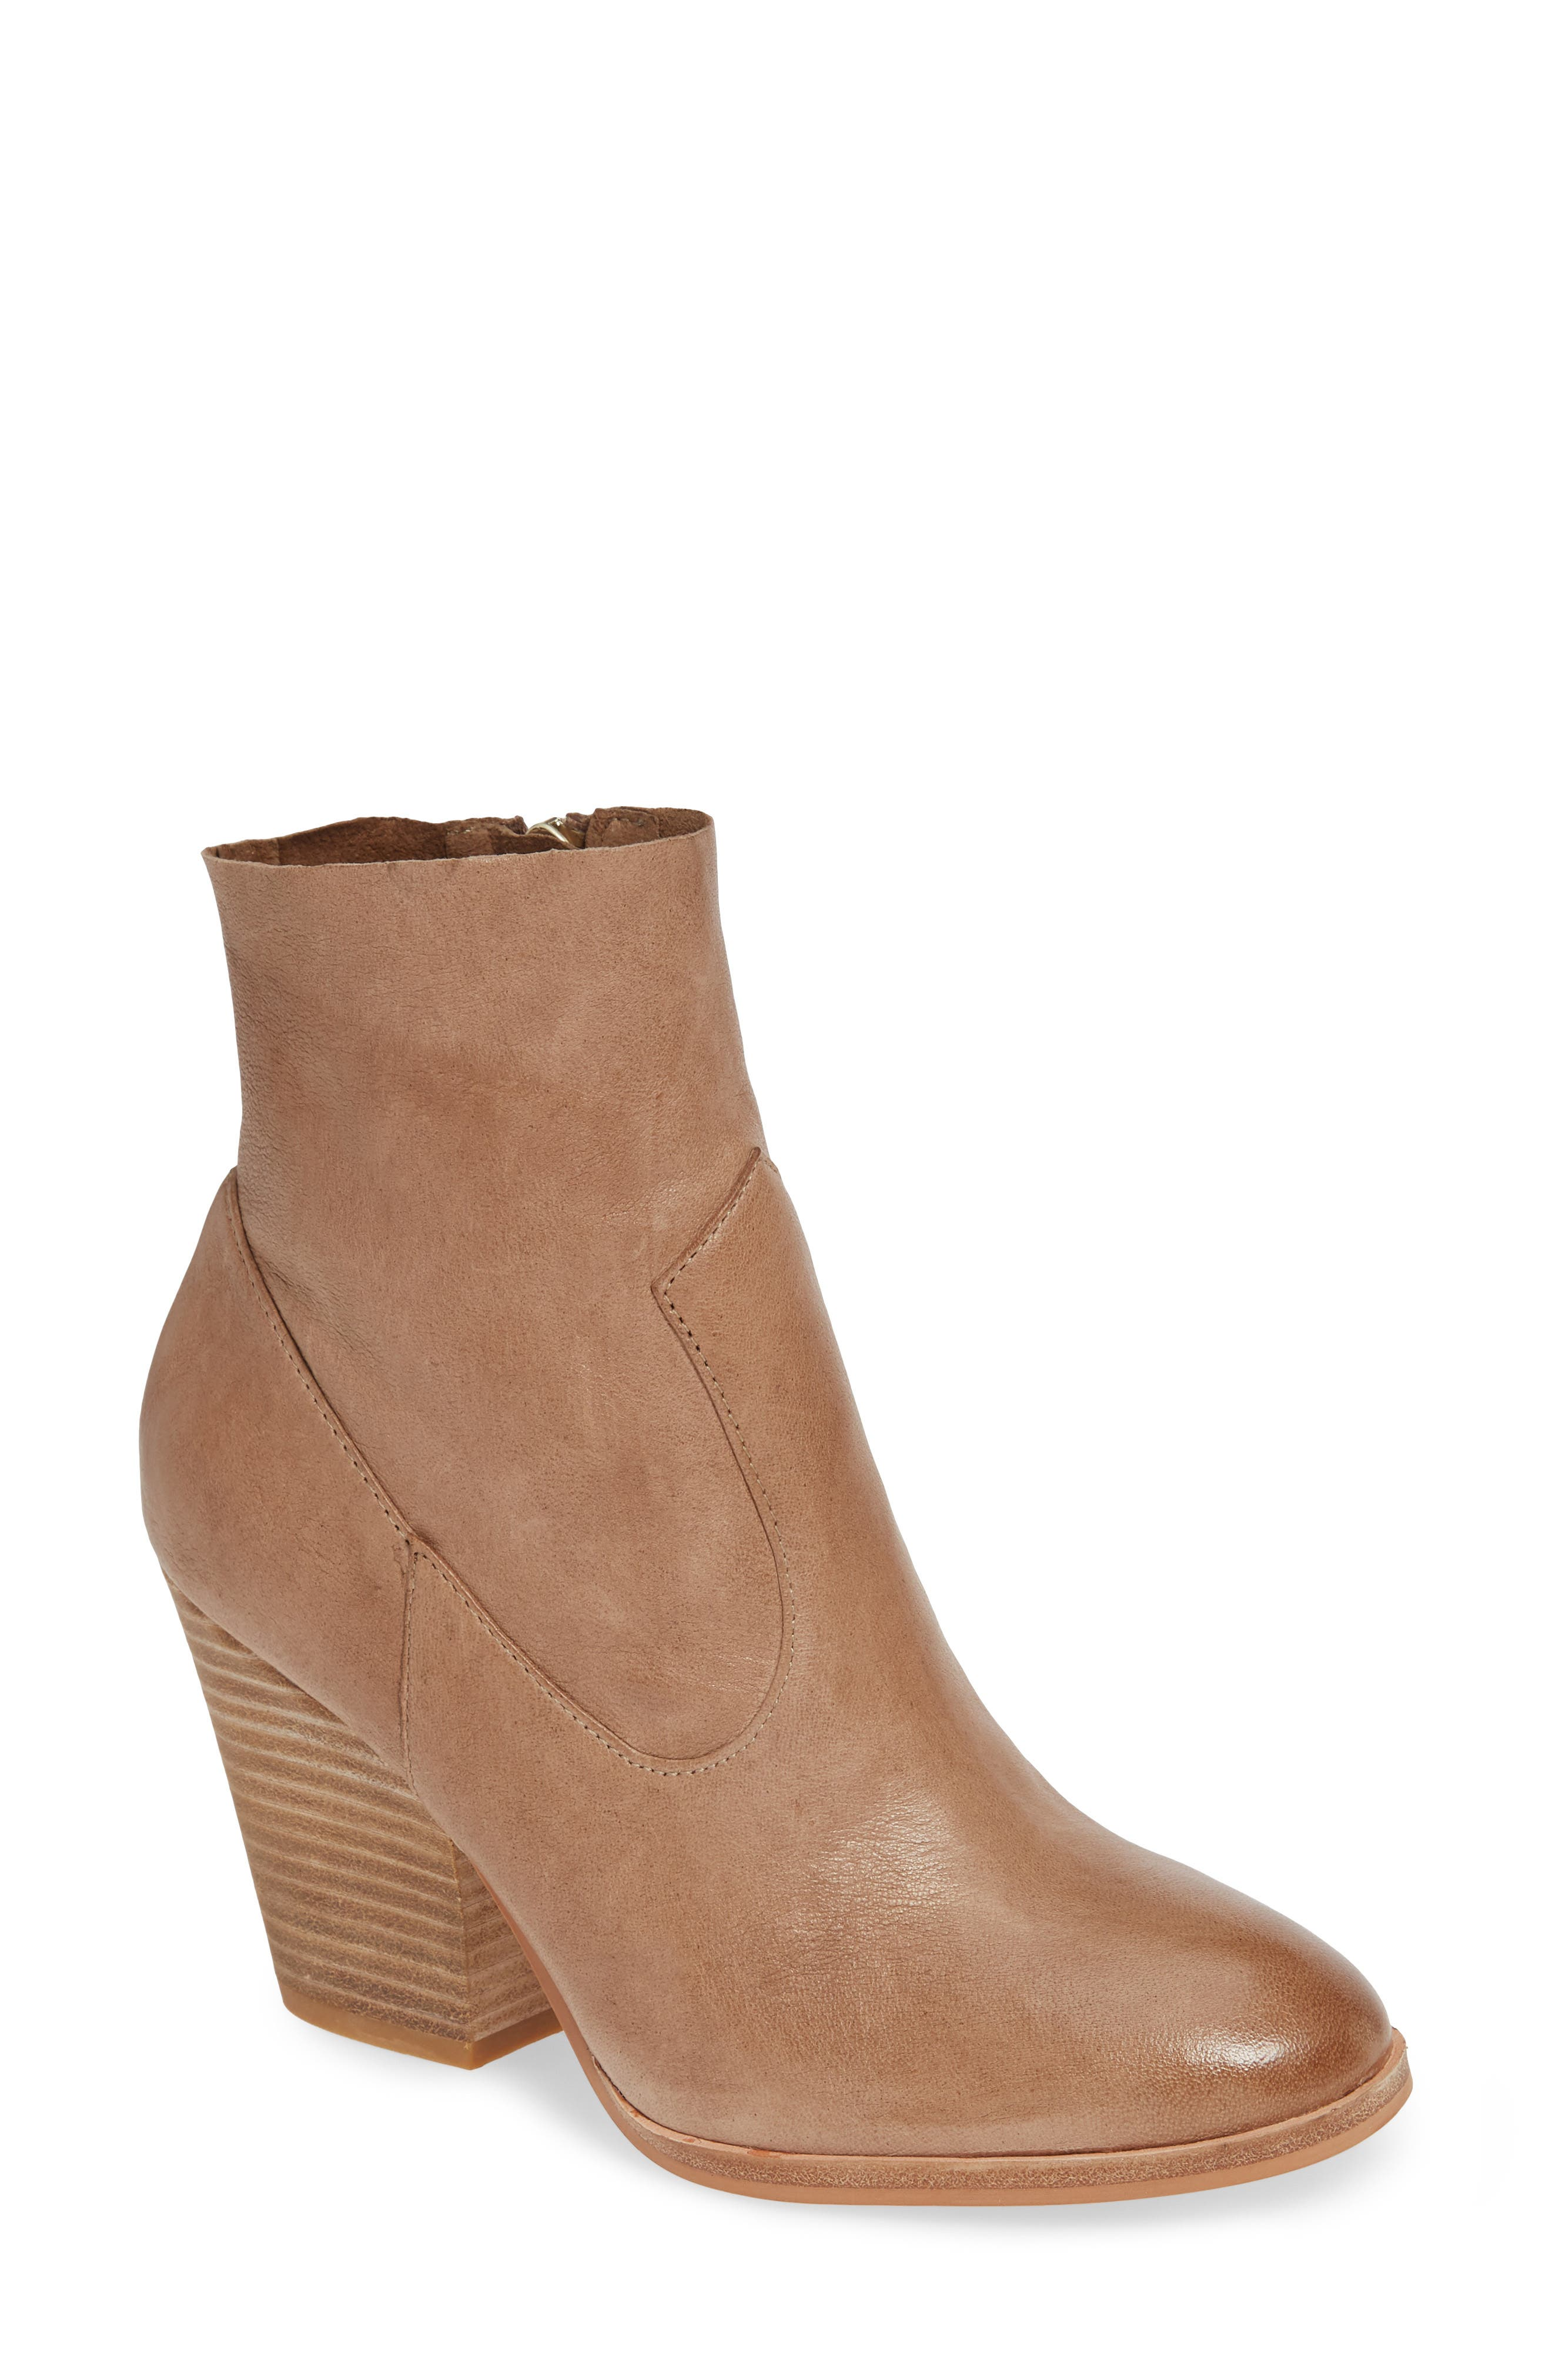 Isola Lani Block Heel Bootie,                             Main thumbnail 1, color,                             LIGHT TAUPE LEATHER